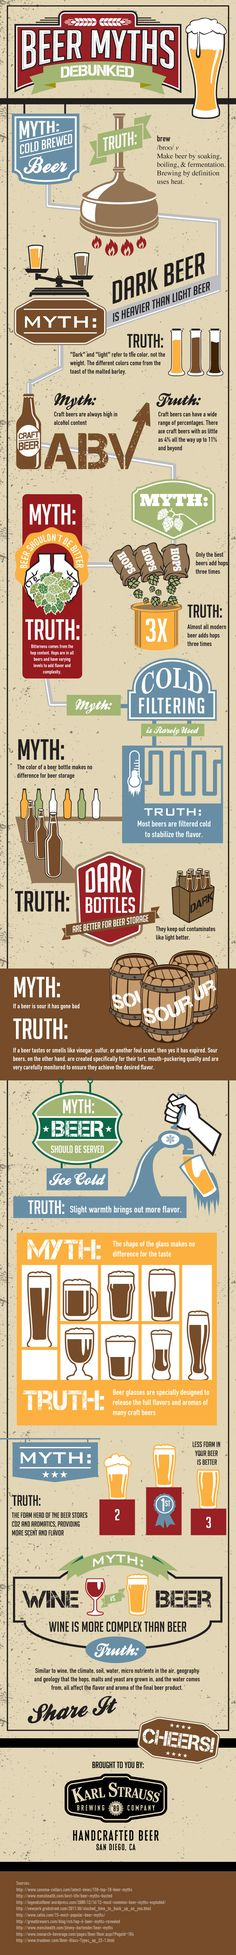 Beer Myths Debunked #Infographic